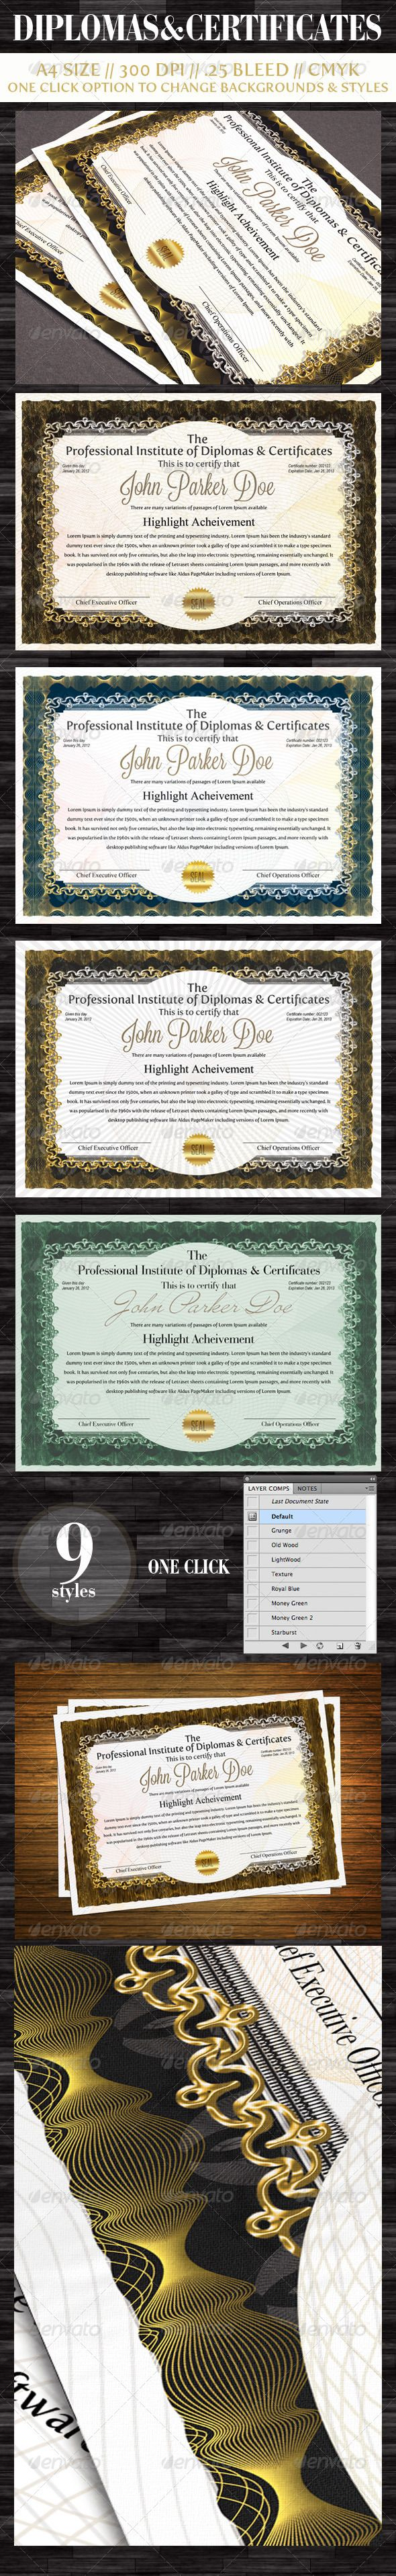 62 best award certificates images on pinterest plants creative diplomas certificates xflitez Gallery